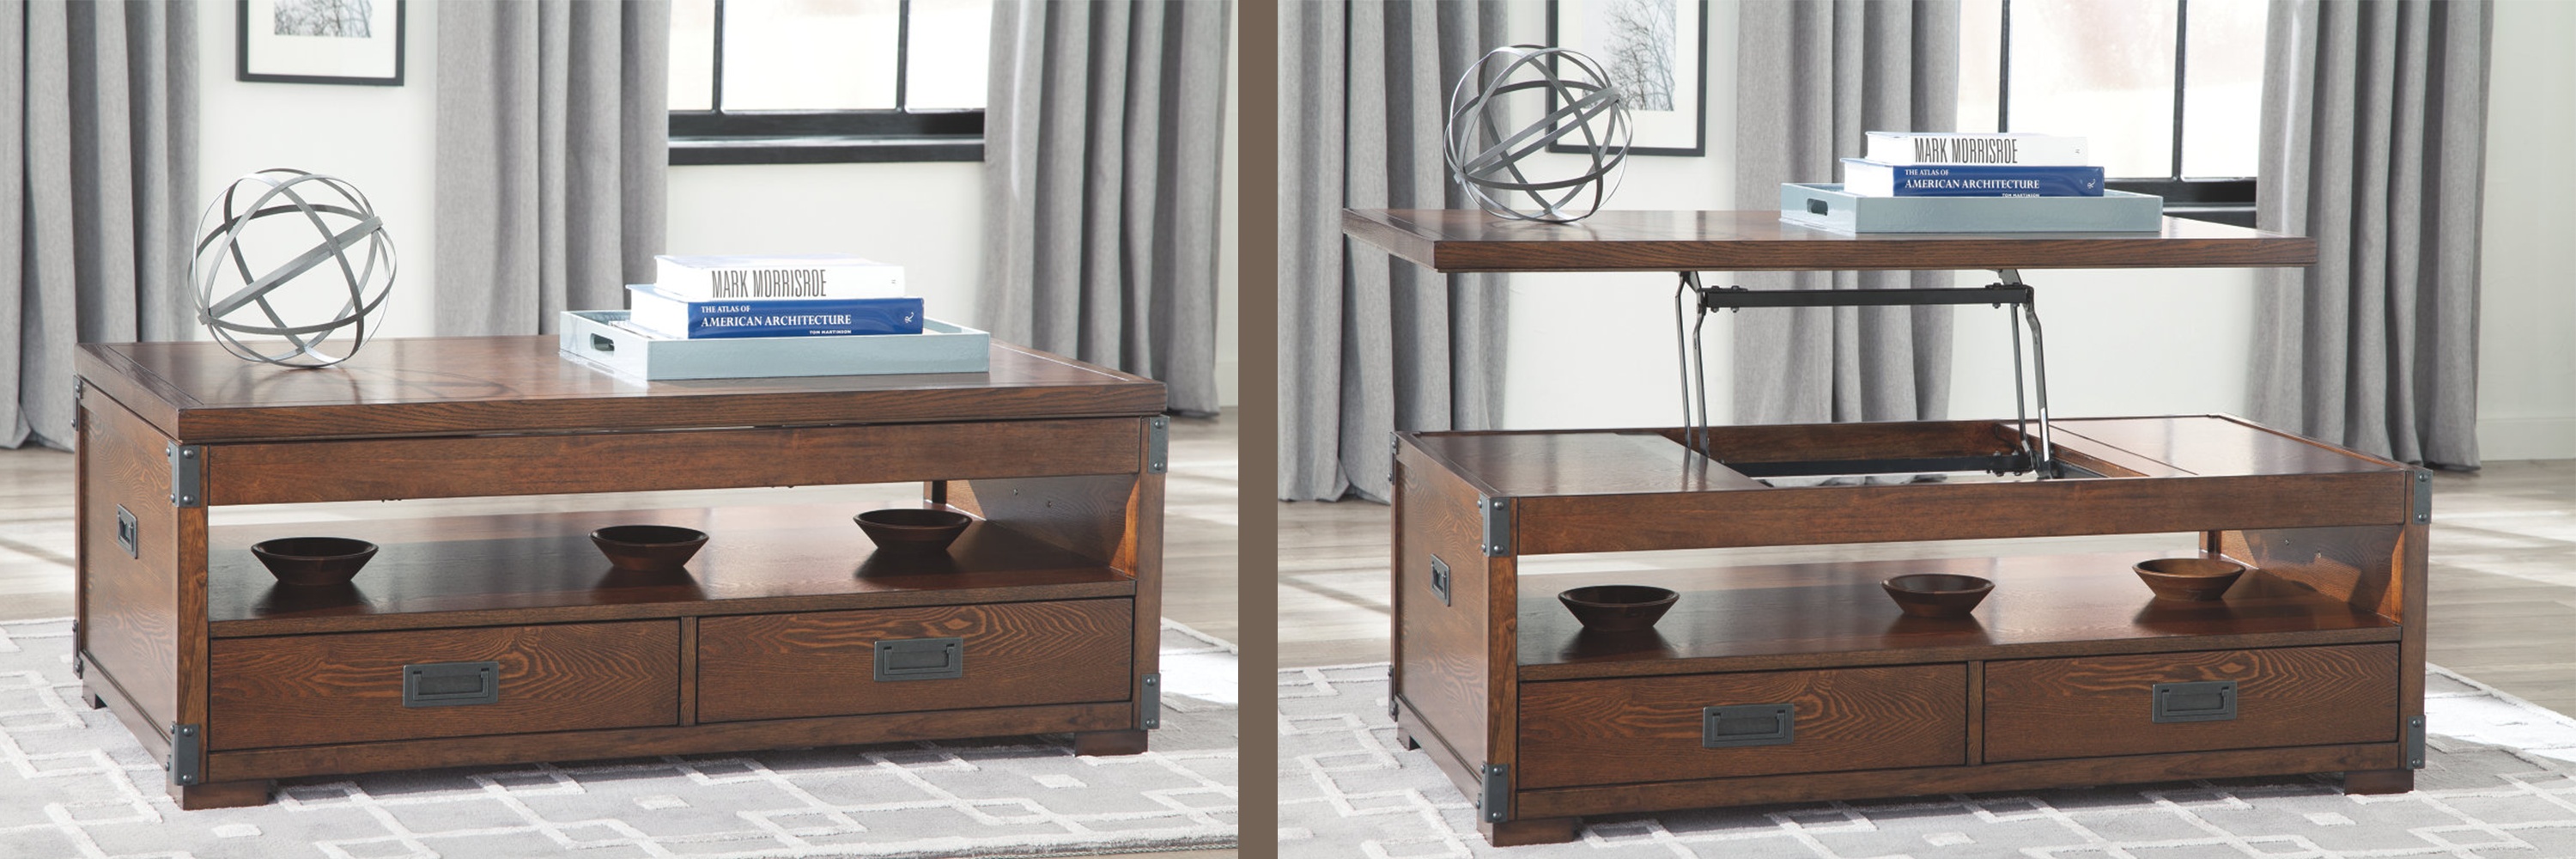 two images of the lift top coffee table, one image shows it opened and the other shows it closed.